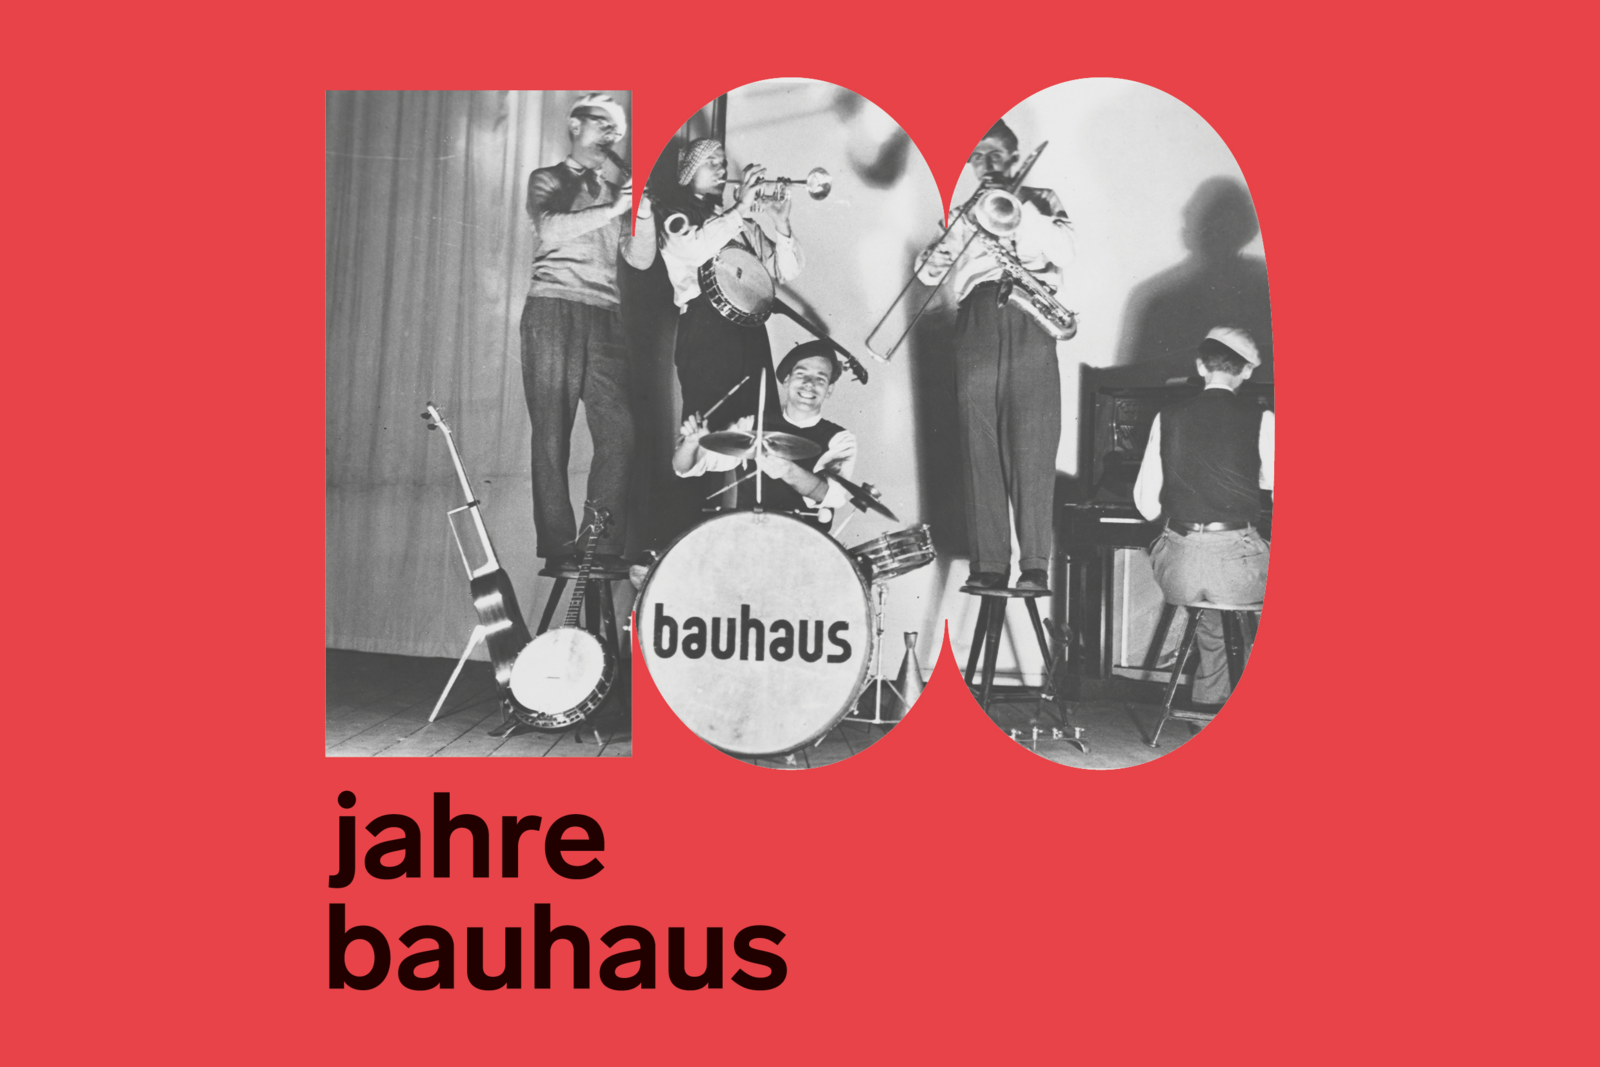 Photo 1 of 10 in 100 Years of Bauhaus: What You Should Know About This Milestone Movement